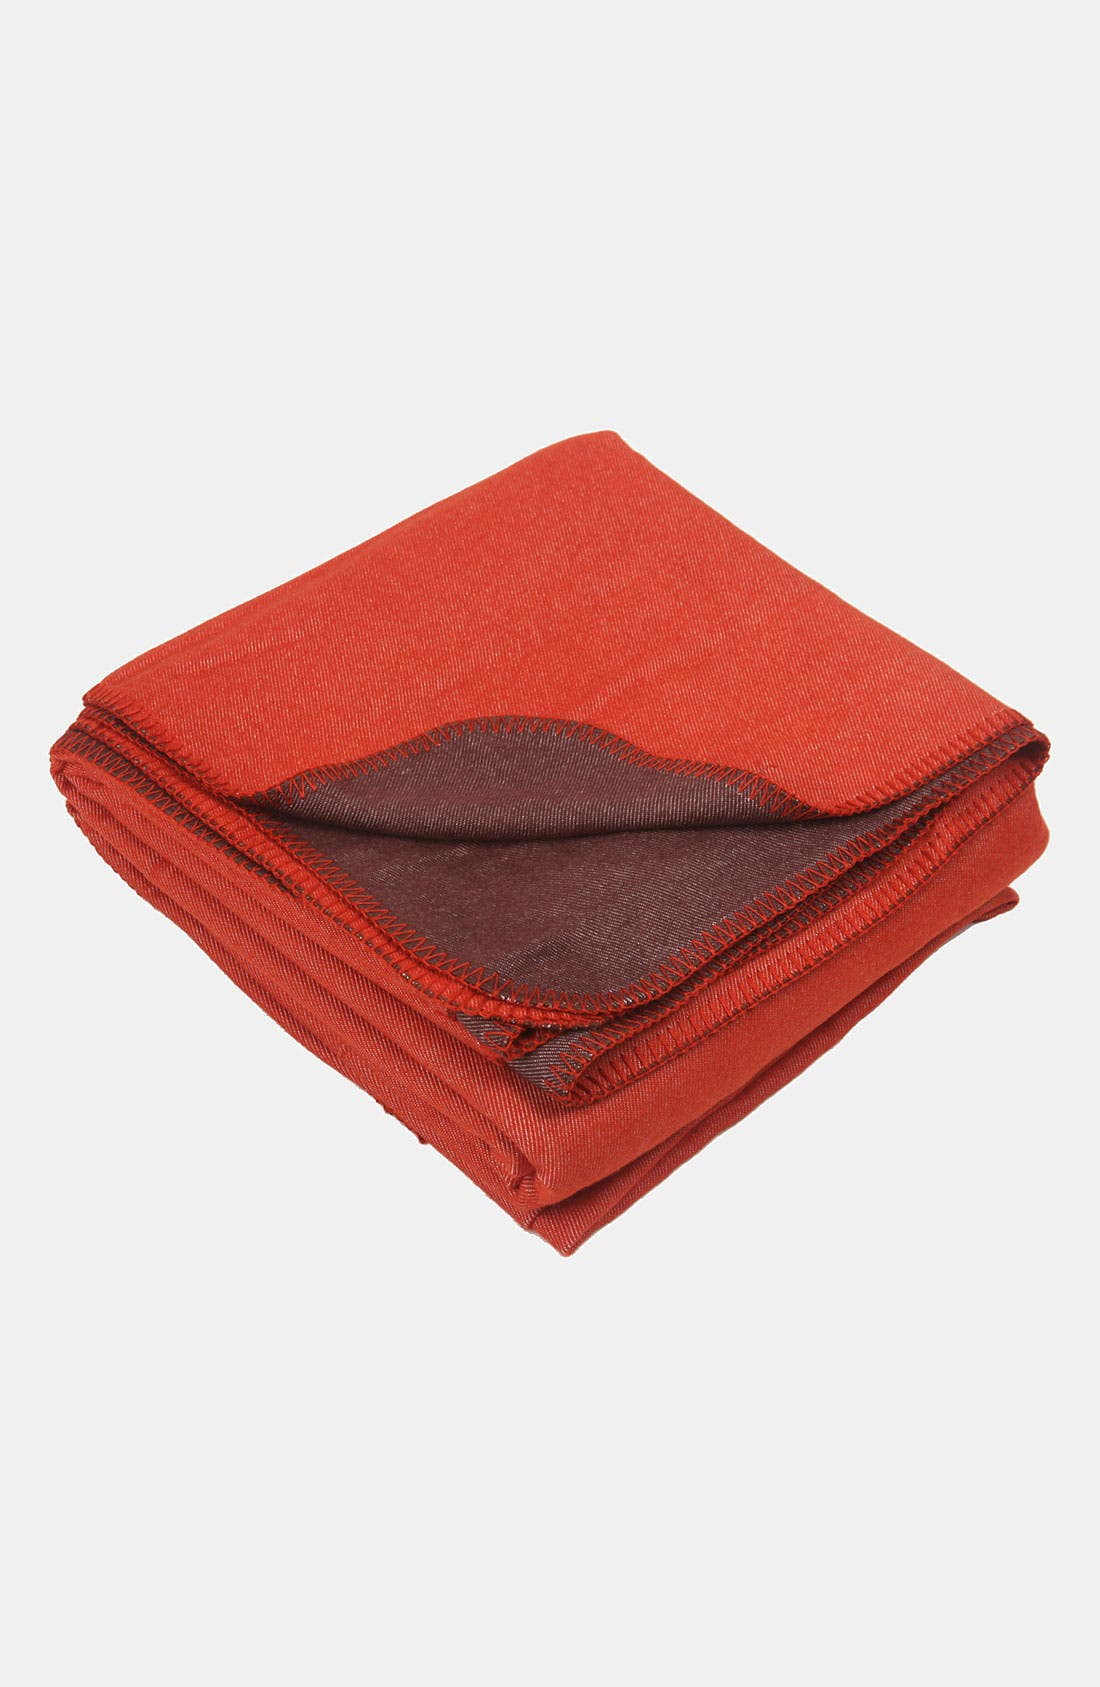 Alternate Image 1 Selected - Blissliving Home 'Alana - Persimmon/Café' Blanket (Online Only)